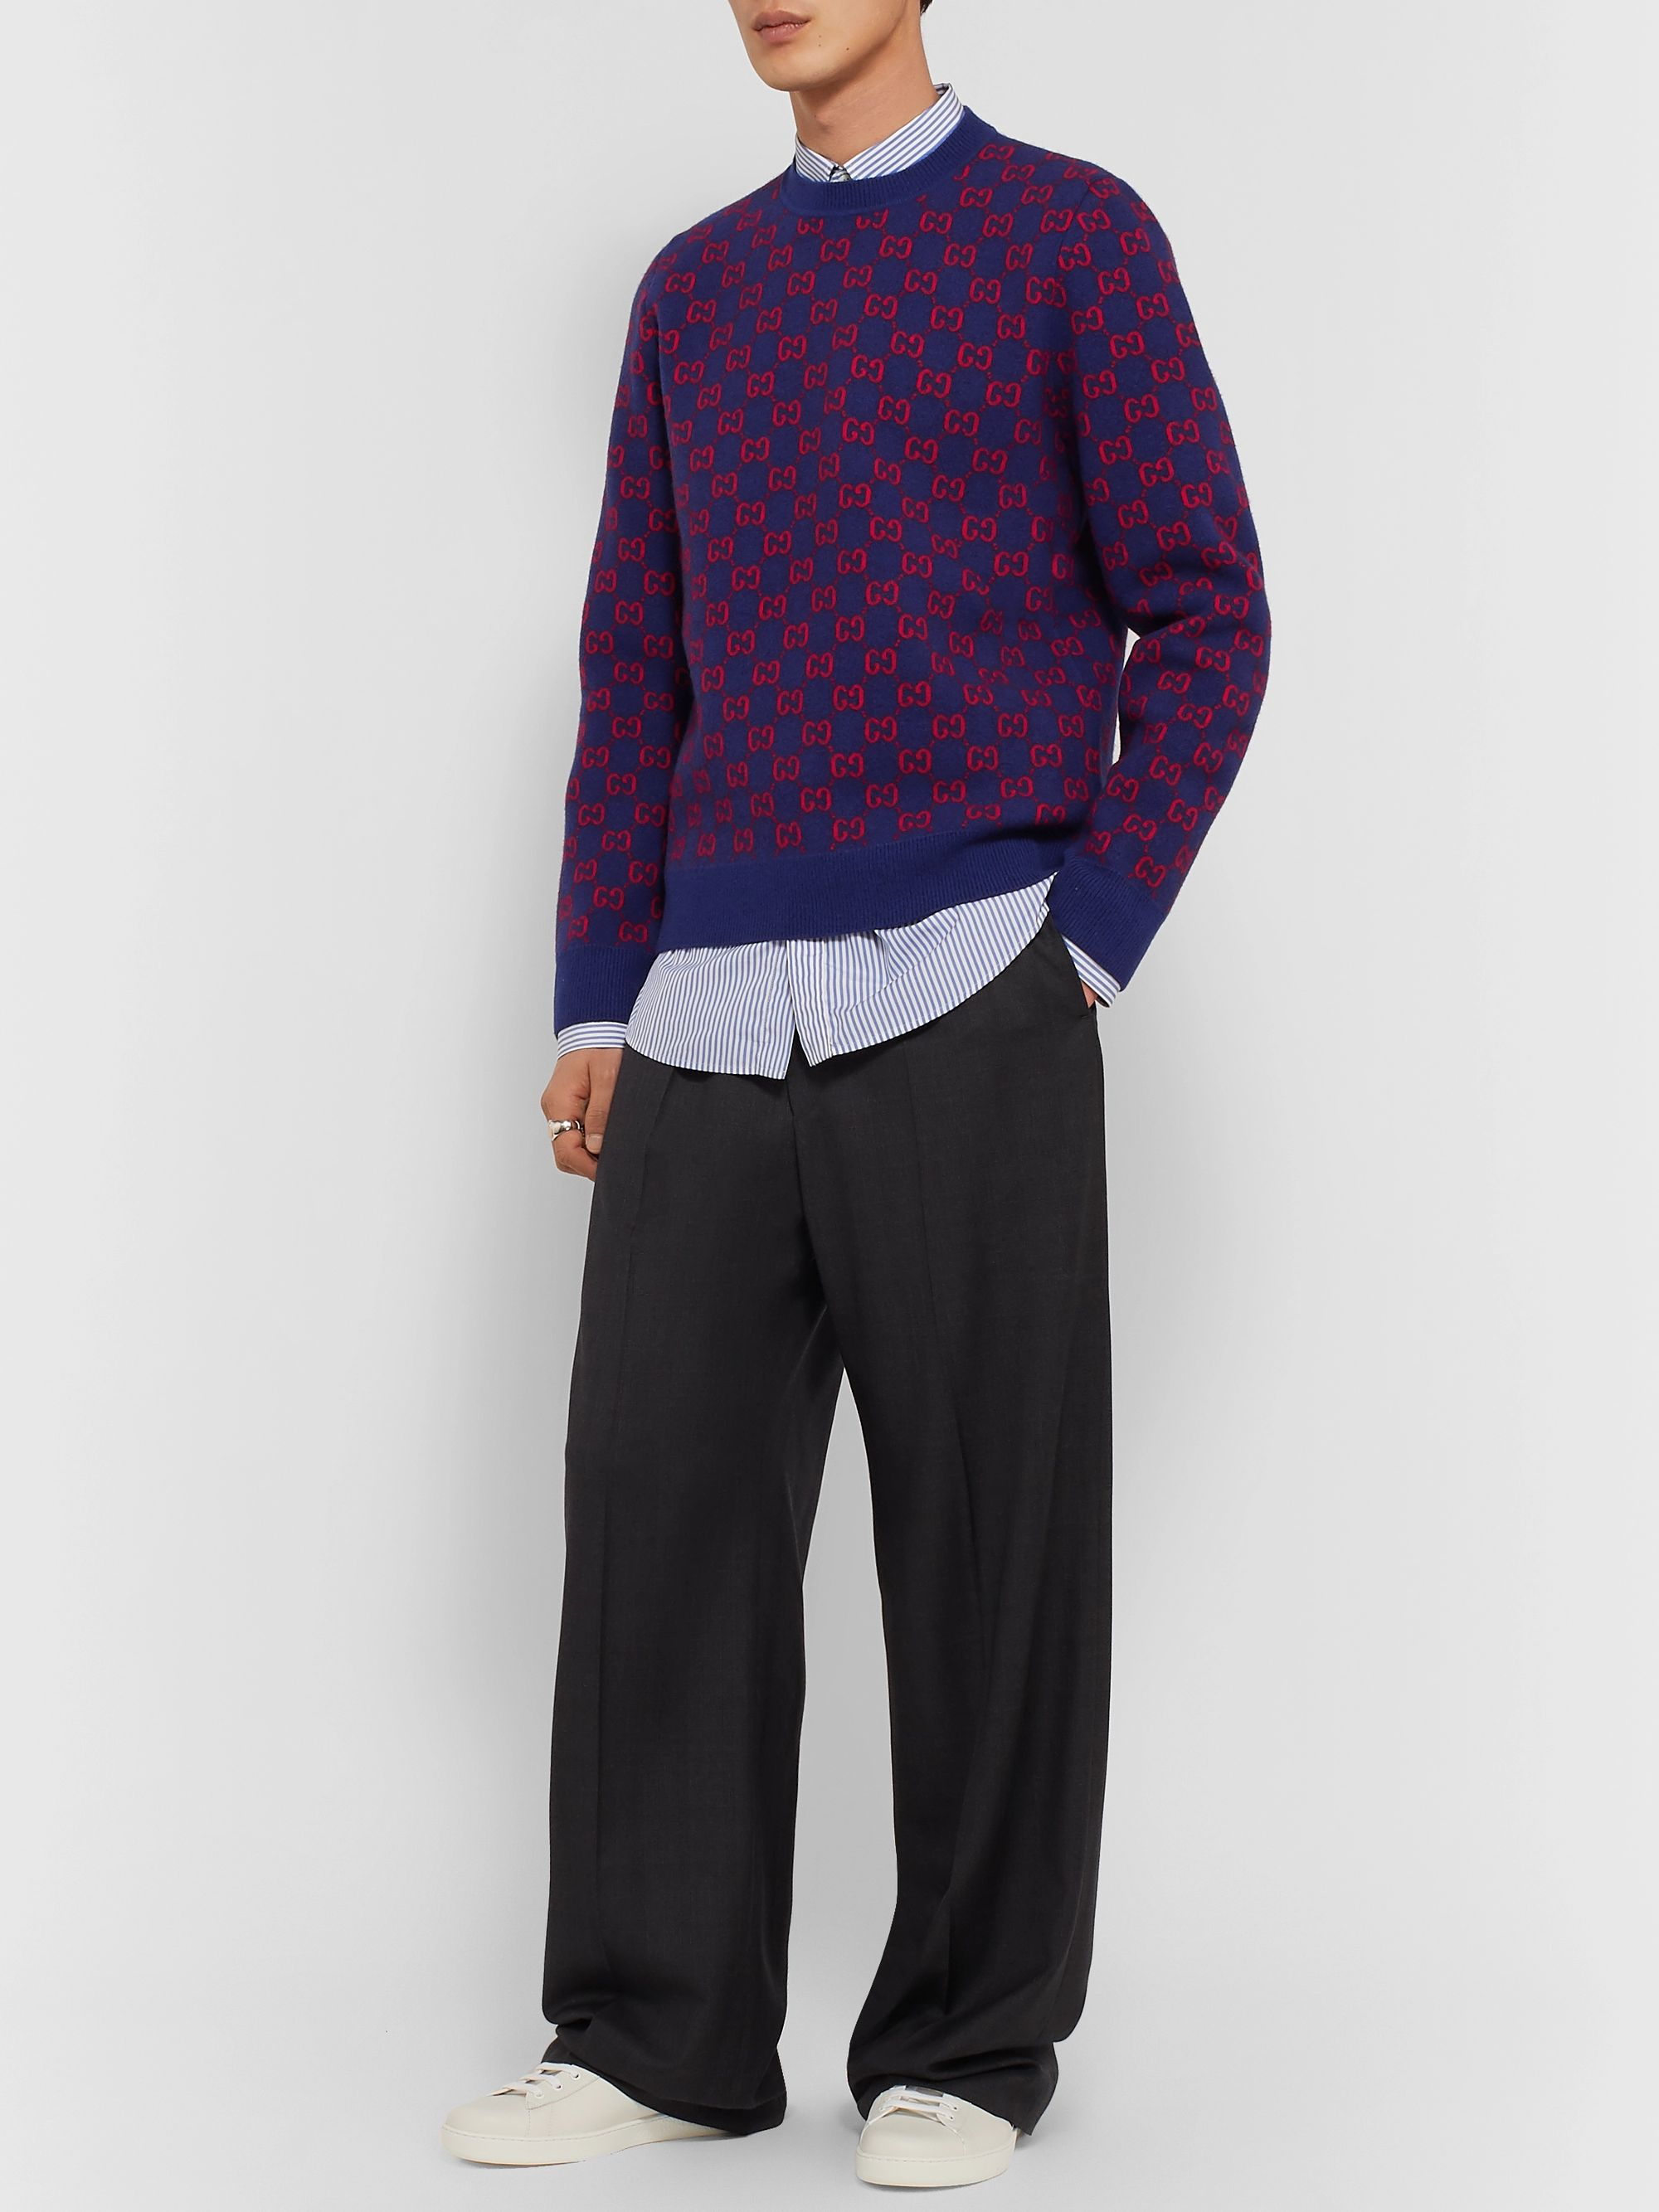 Gucci Logo-Jacquard Wool and Cashmere-Blend Sweater